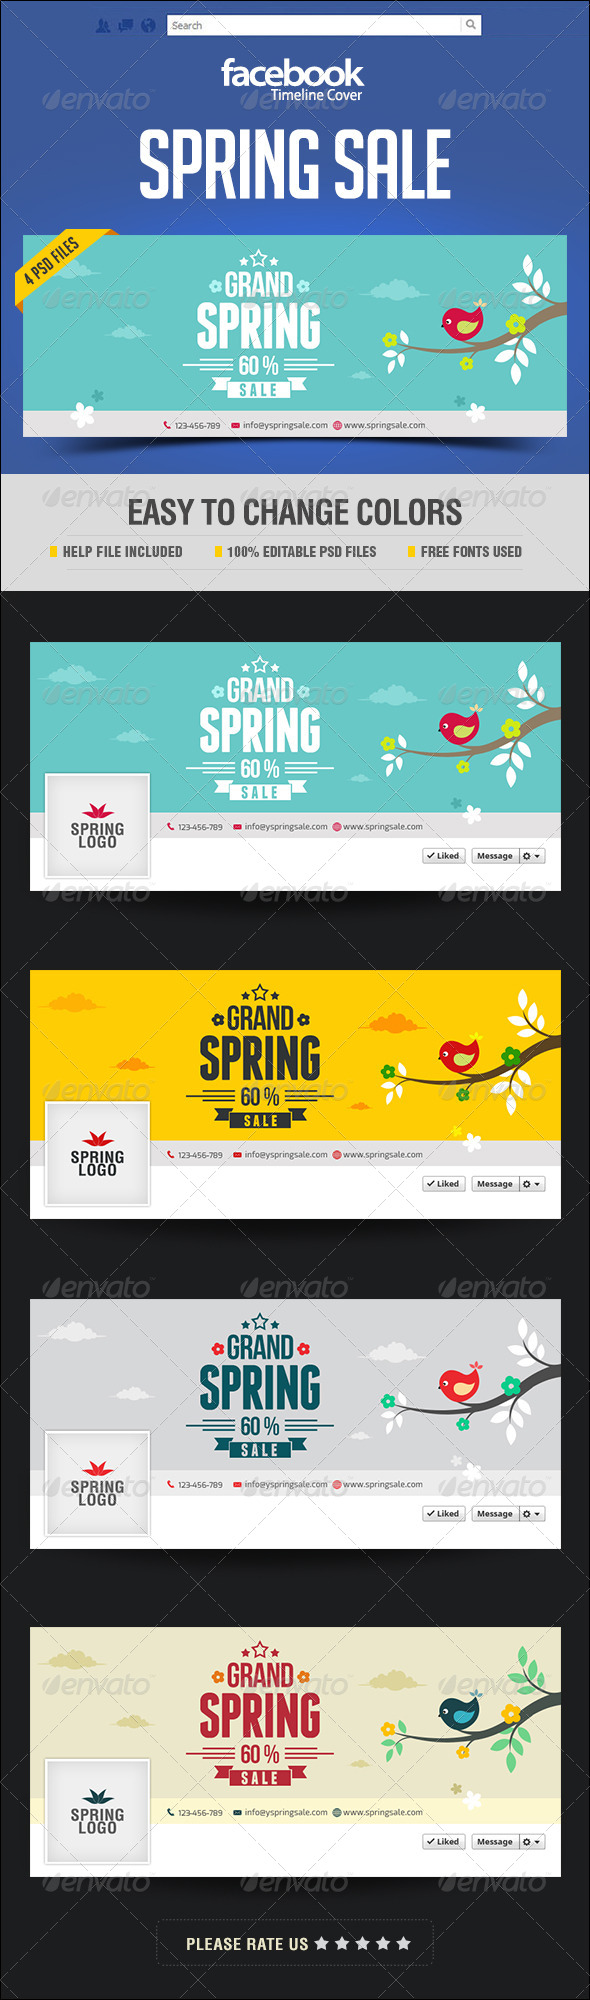 GraphicRiver Spring Sale Facebook Cover Page 7596349